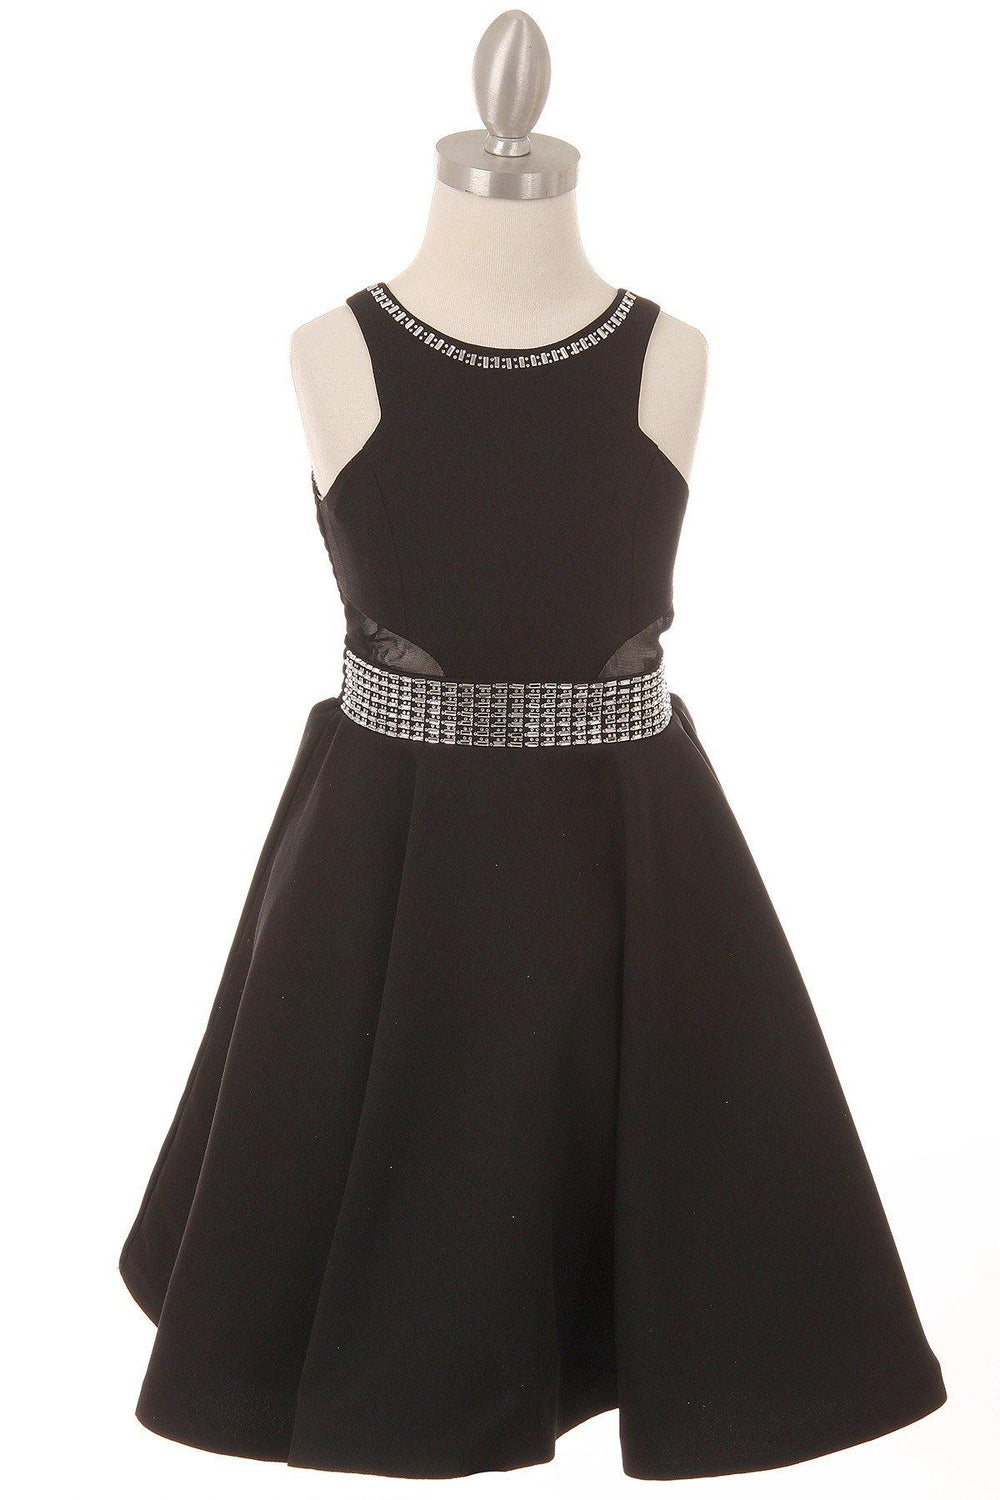 Short Sparkle Flower Girl Dress - The Dress Outlet Black